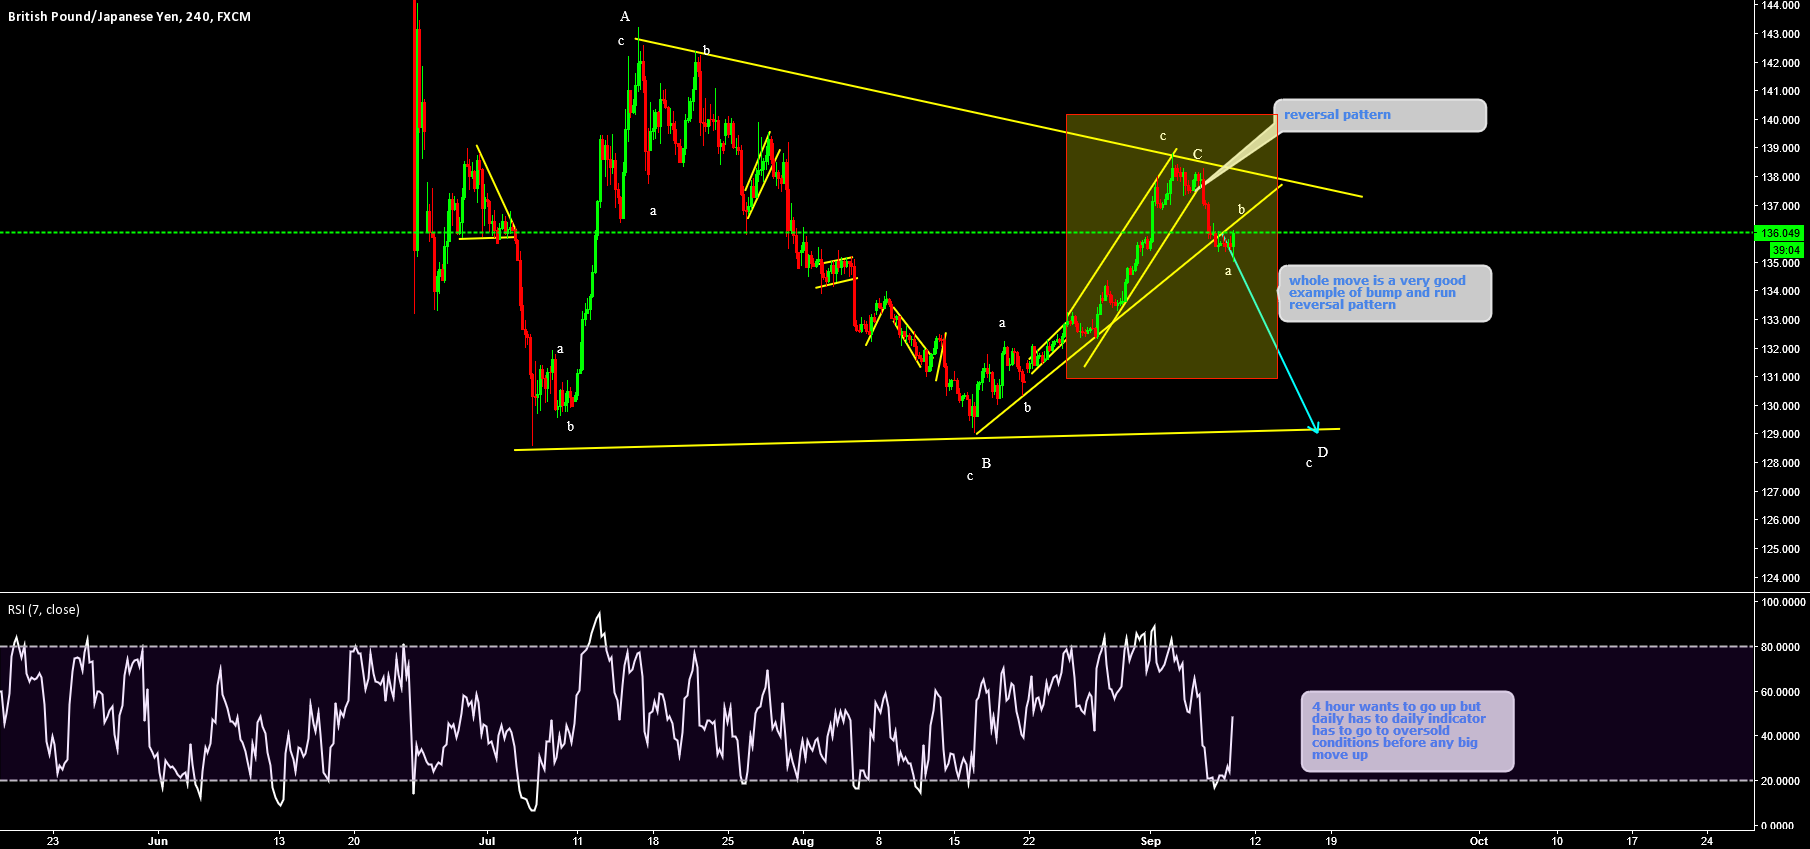 Dont go dirty long on GBPJPY